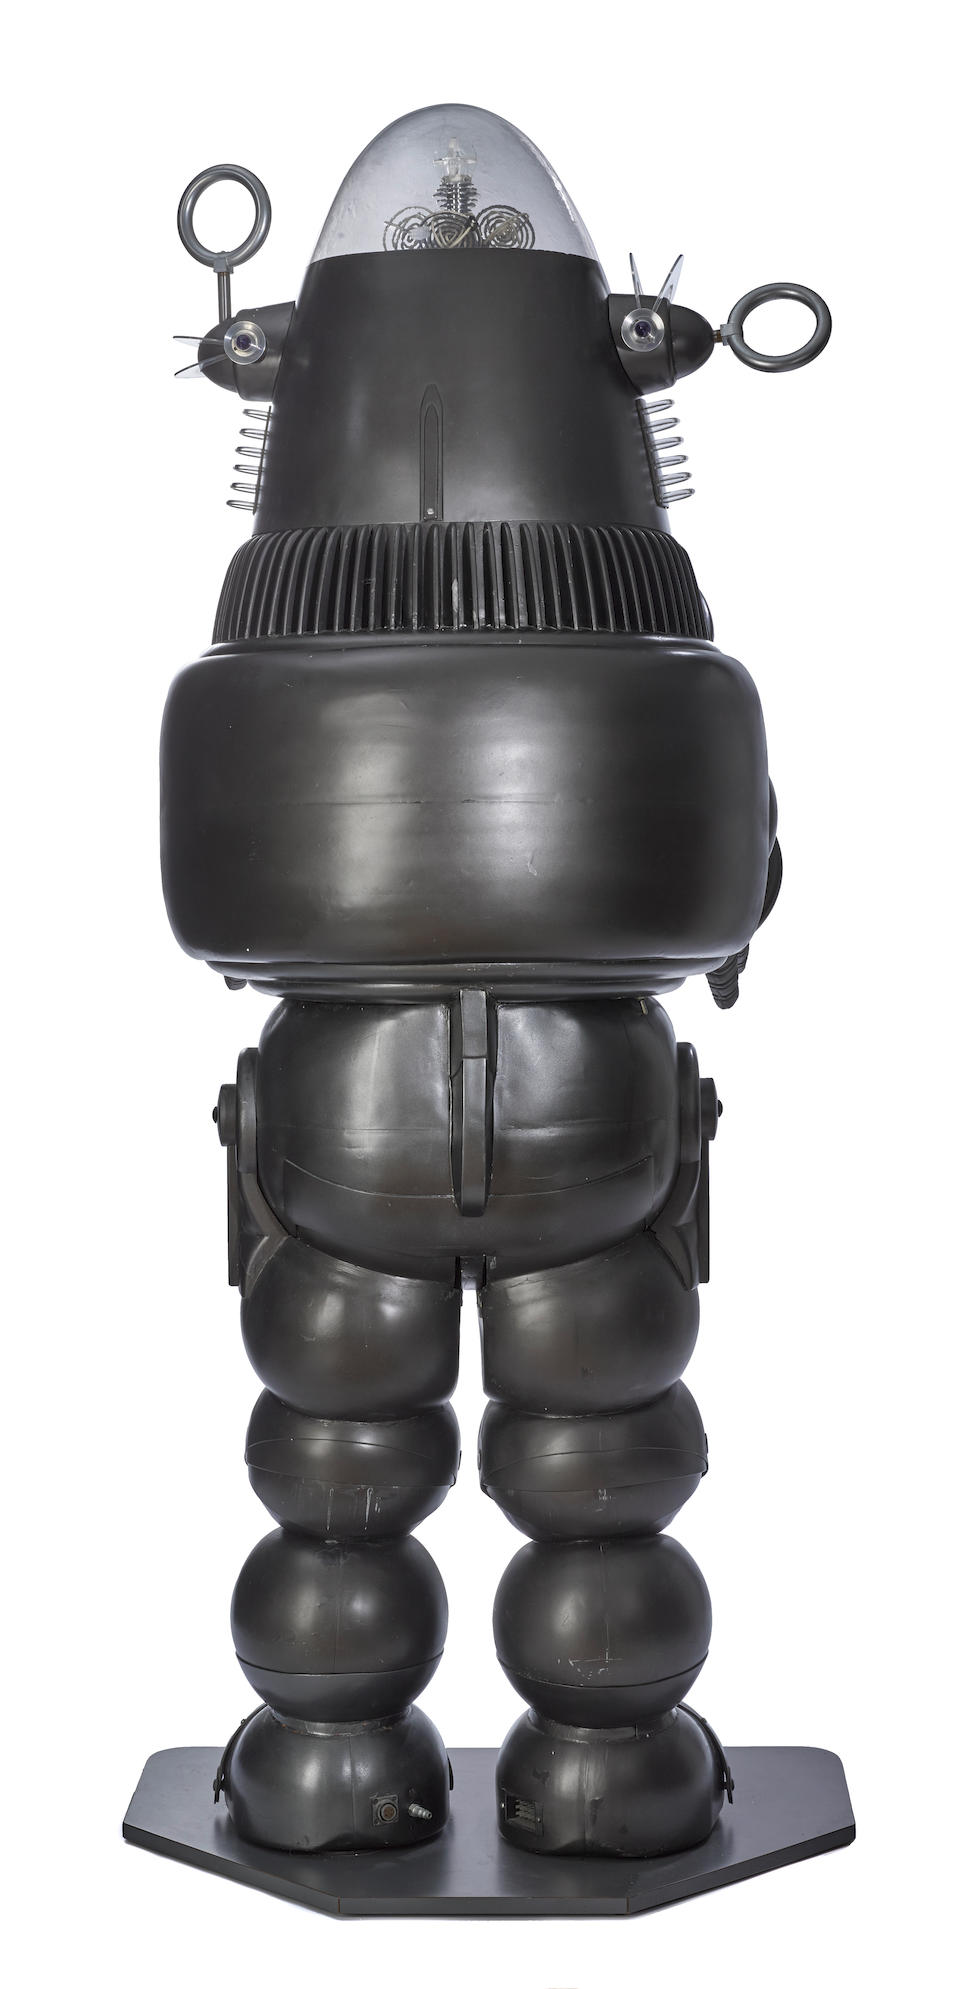 Bonhams : The iconic original Robby the Robot suit and Jeep from